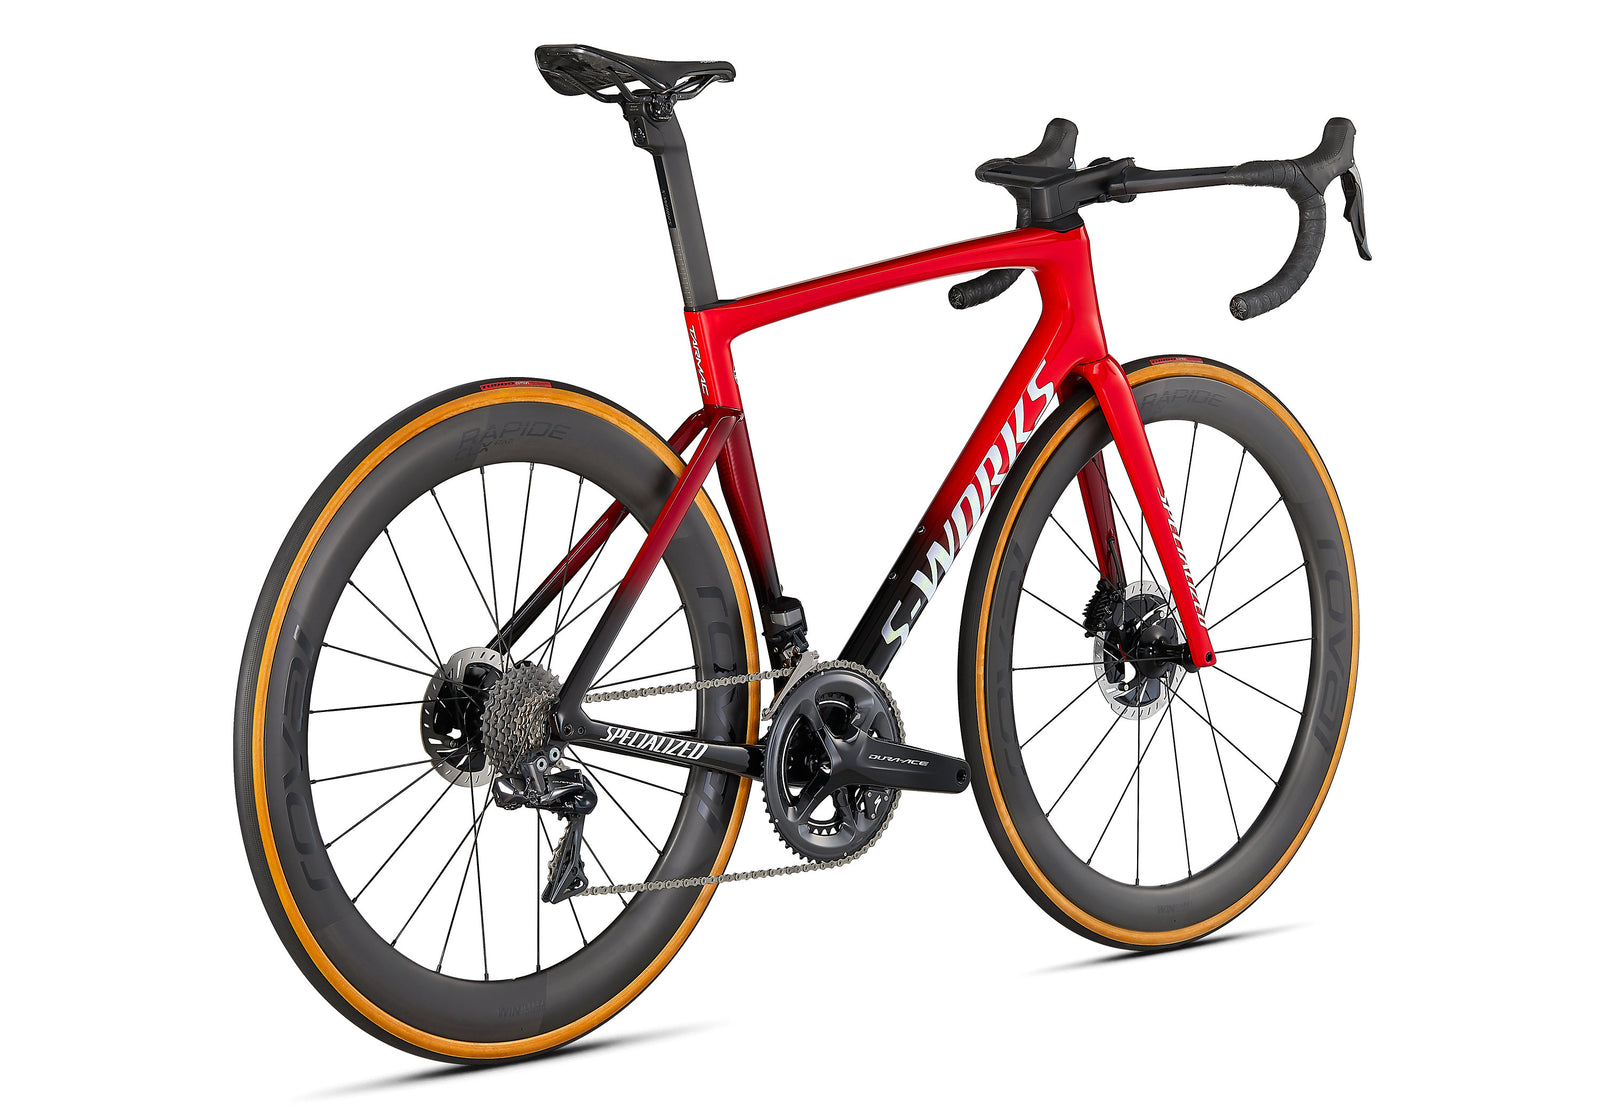 All-New S-Works Tarmac SL7